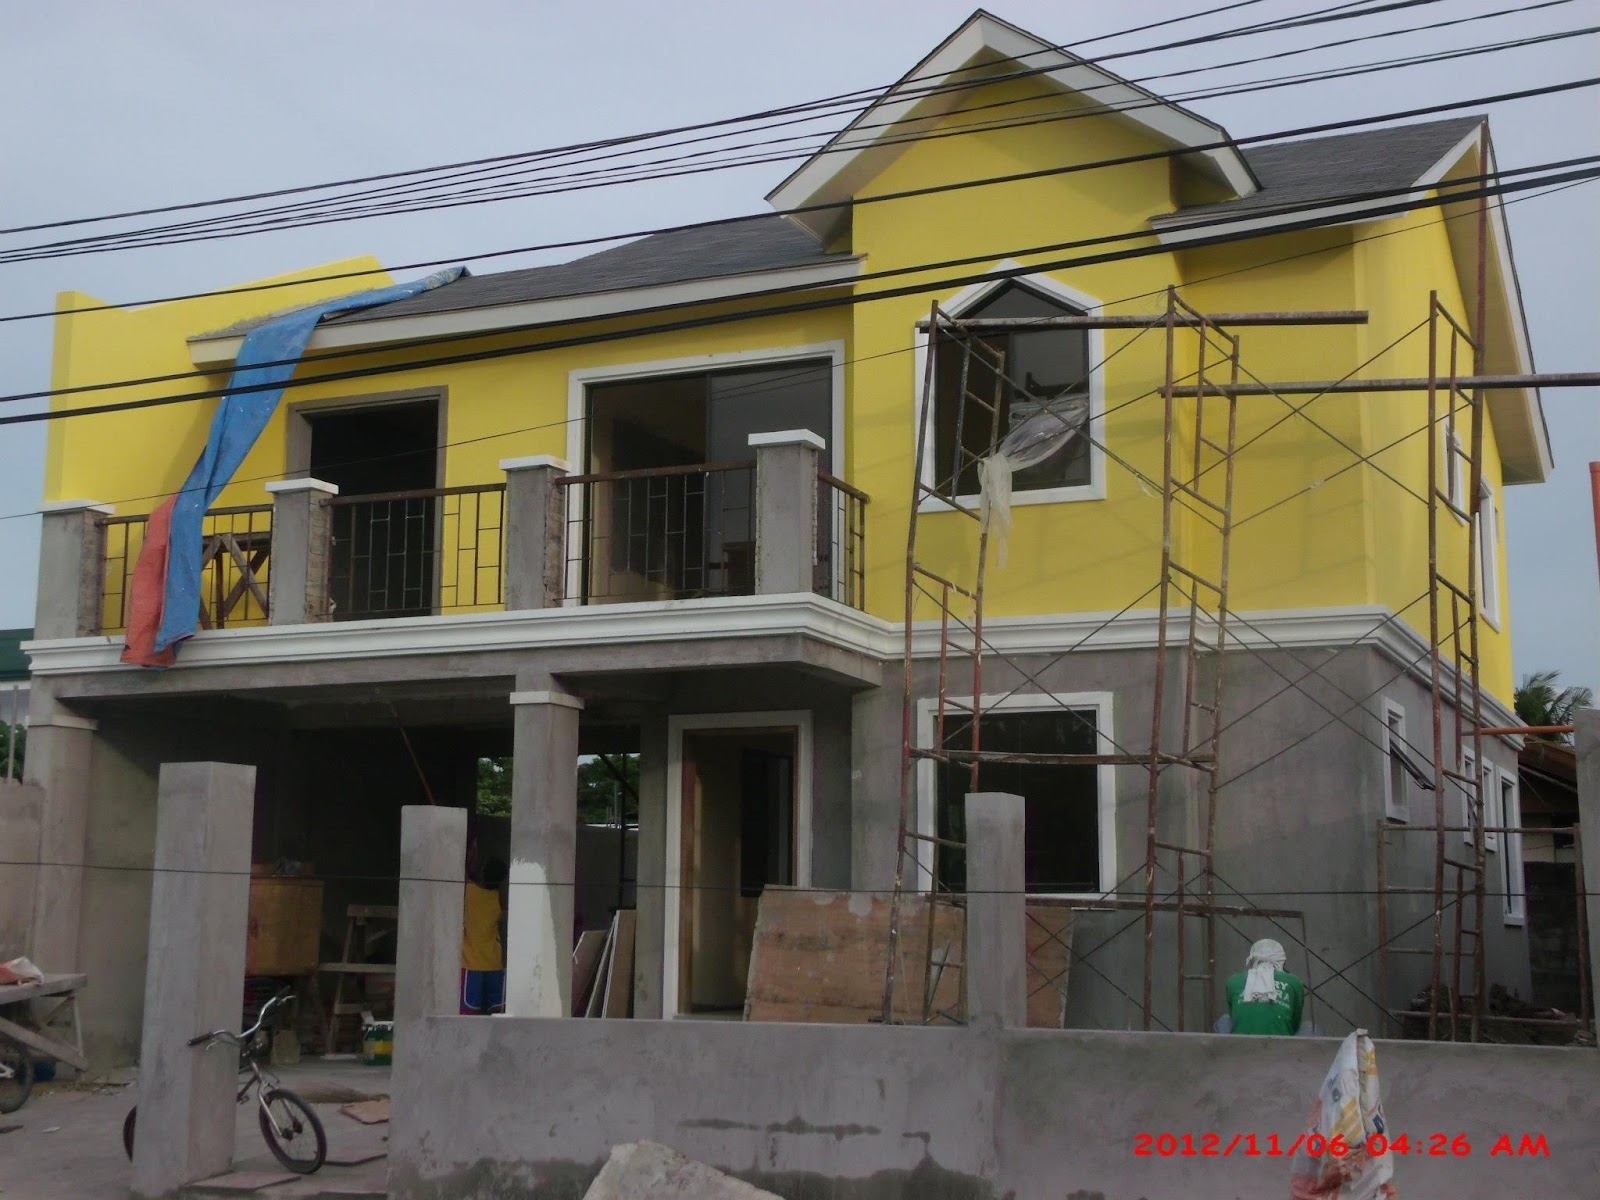 House construction house construction in philippines for Contractors for building houses